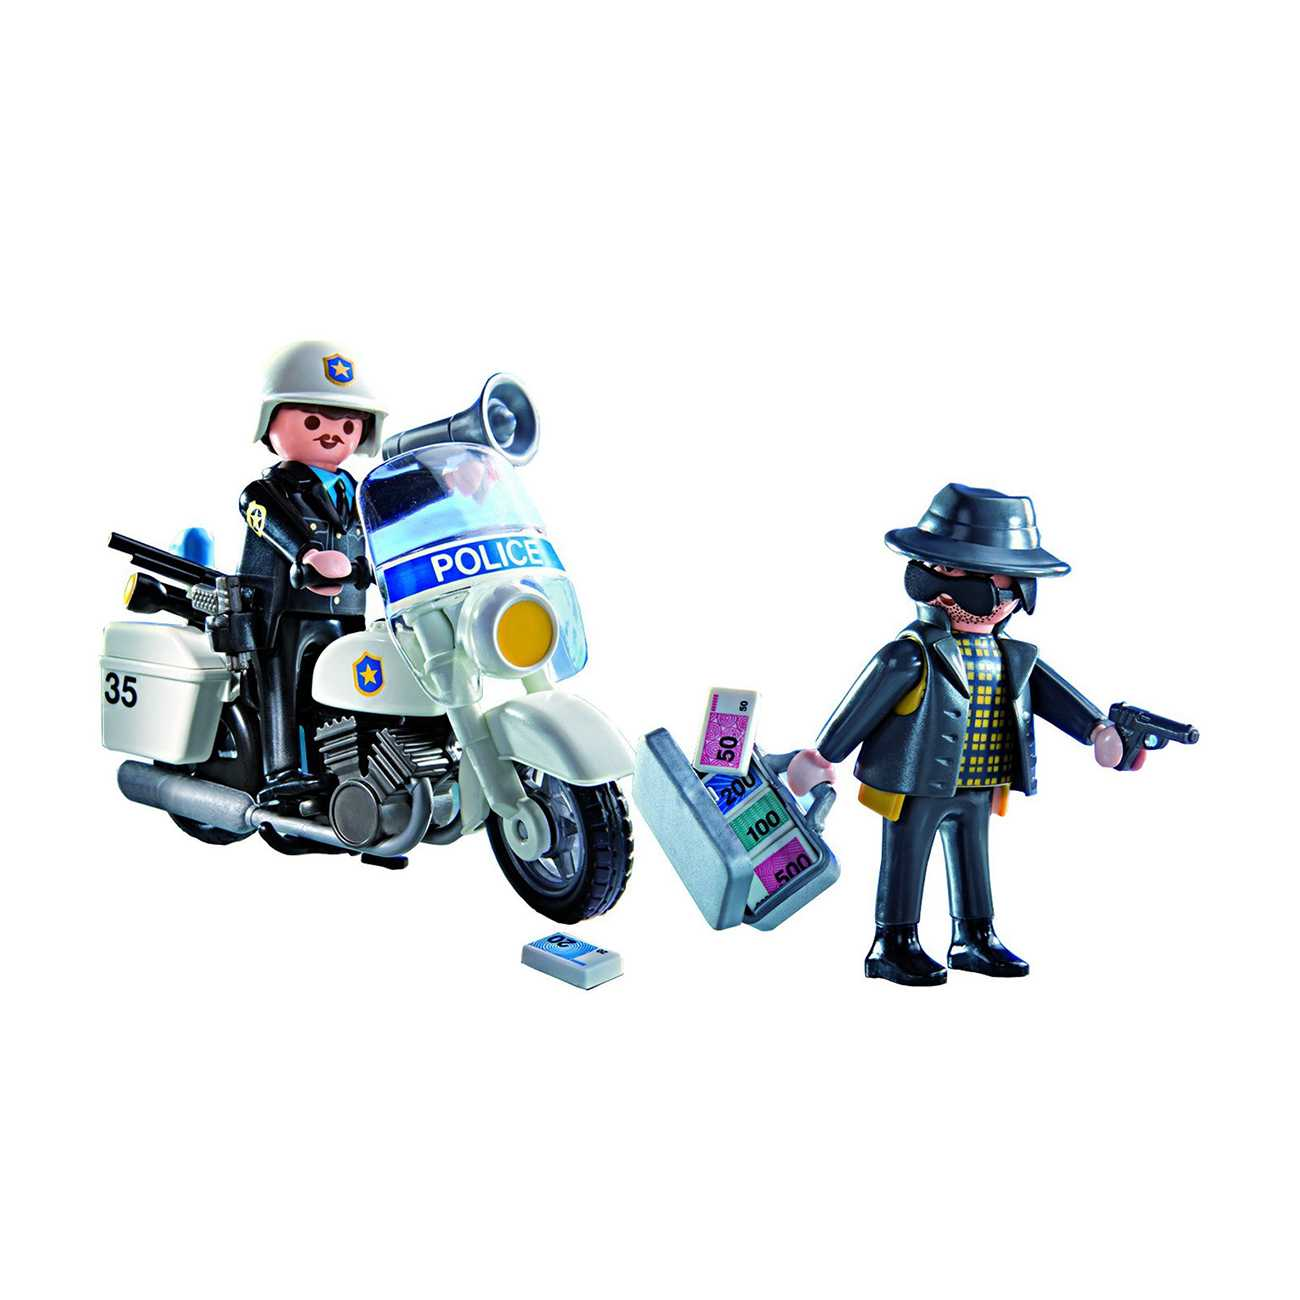 CARRYING CASE POLICE